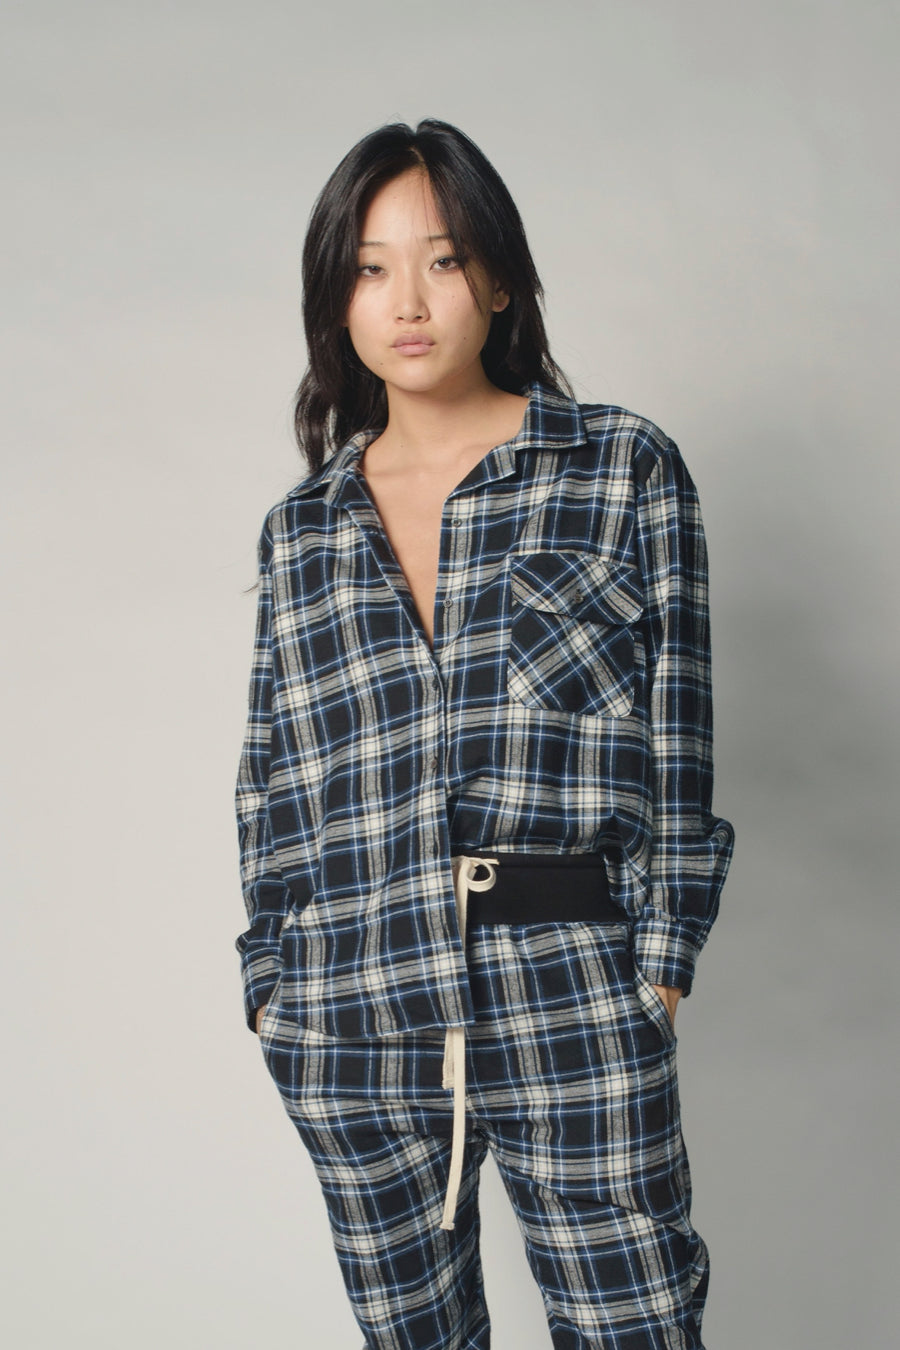 KES Mela Pajama Button Up - Navy Flannel